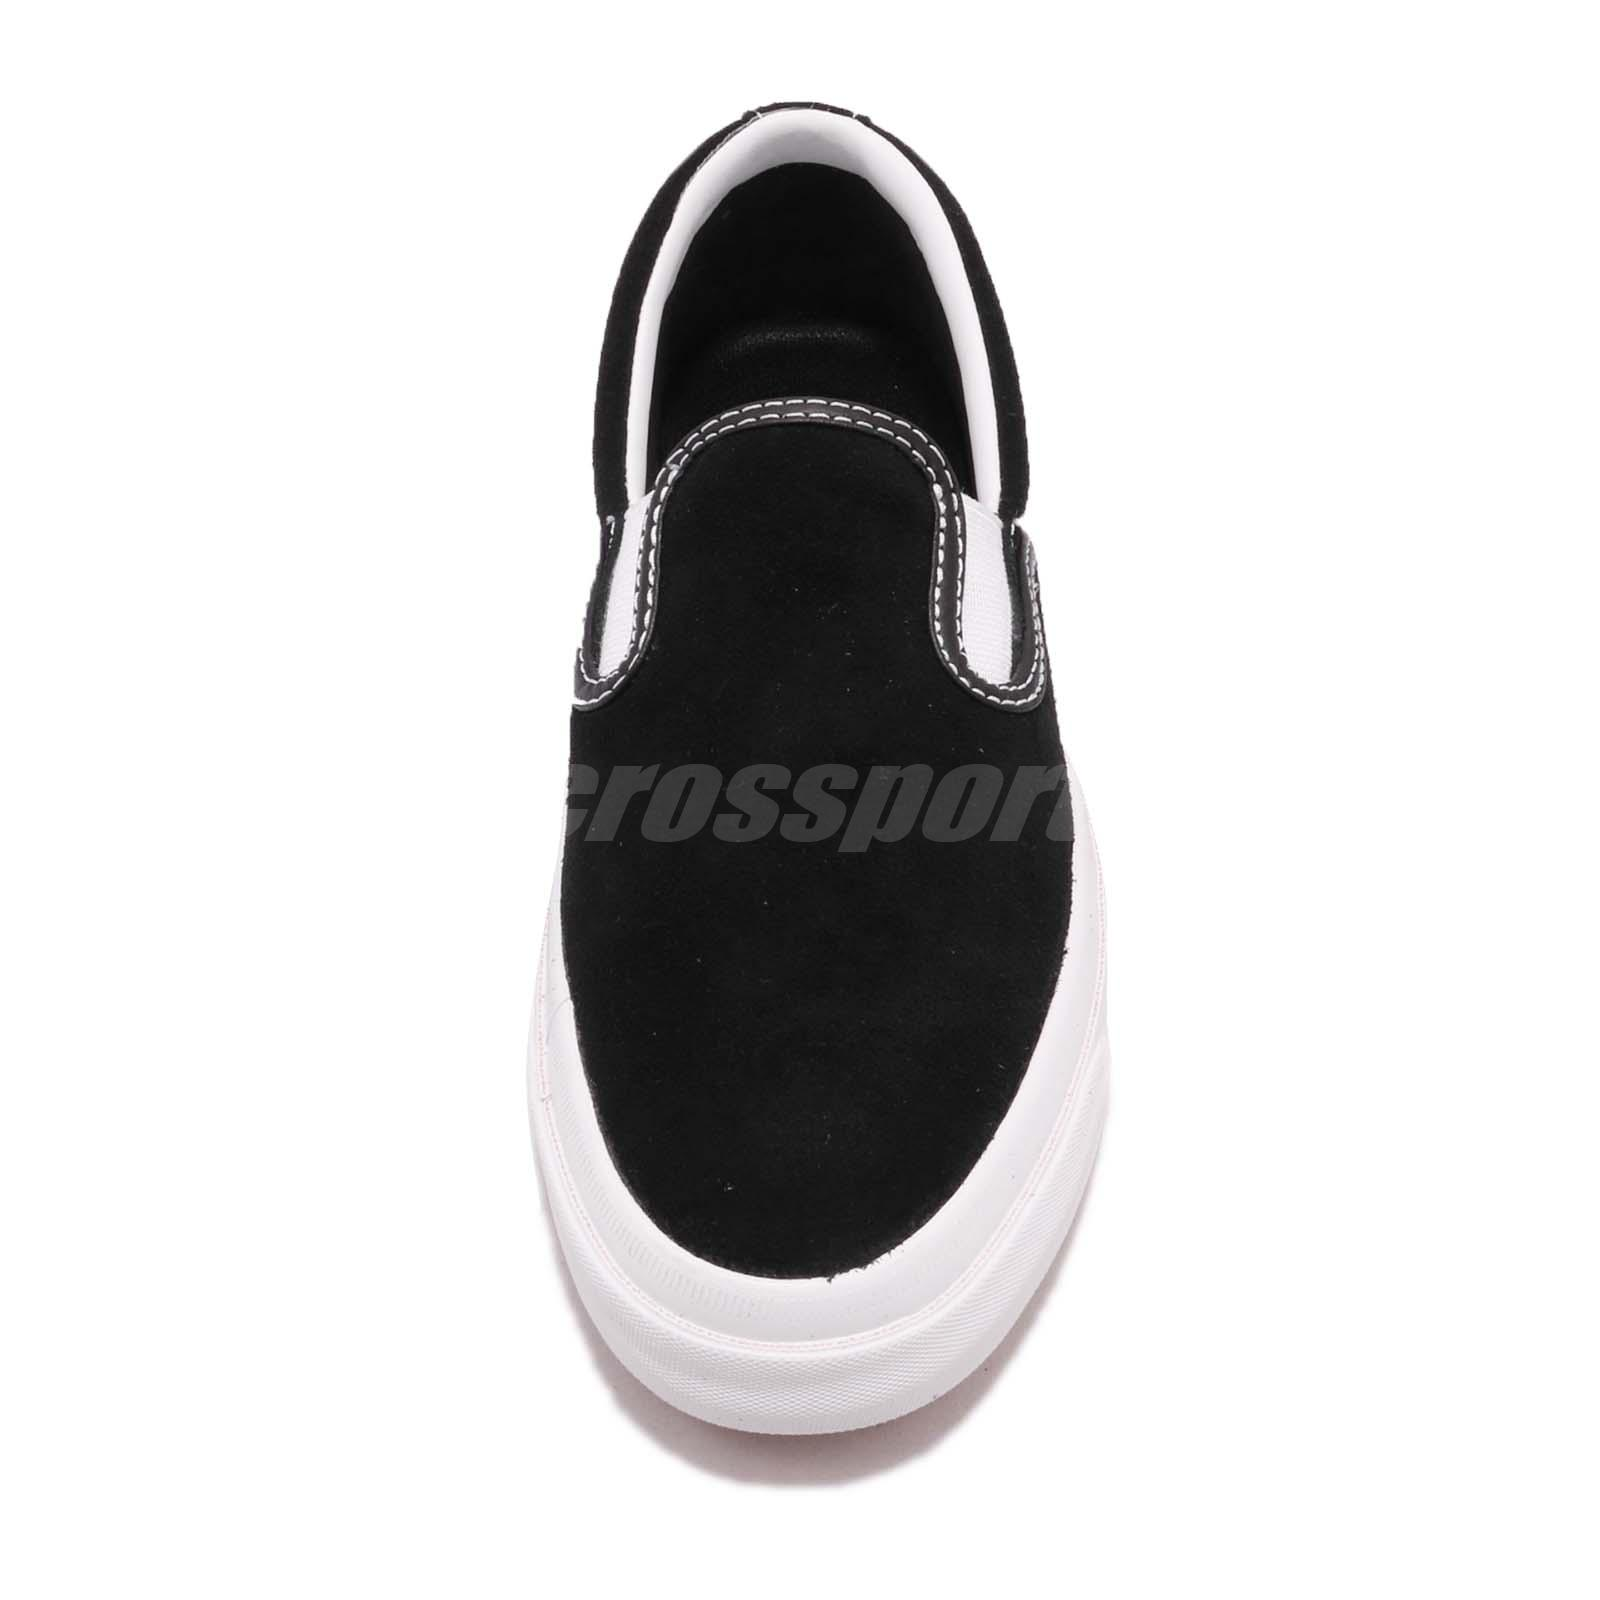 Converse One Star CC Slip On Black White Men Casual Shoes Sneakers ... 18a068add13